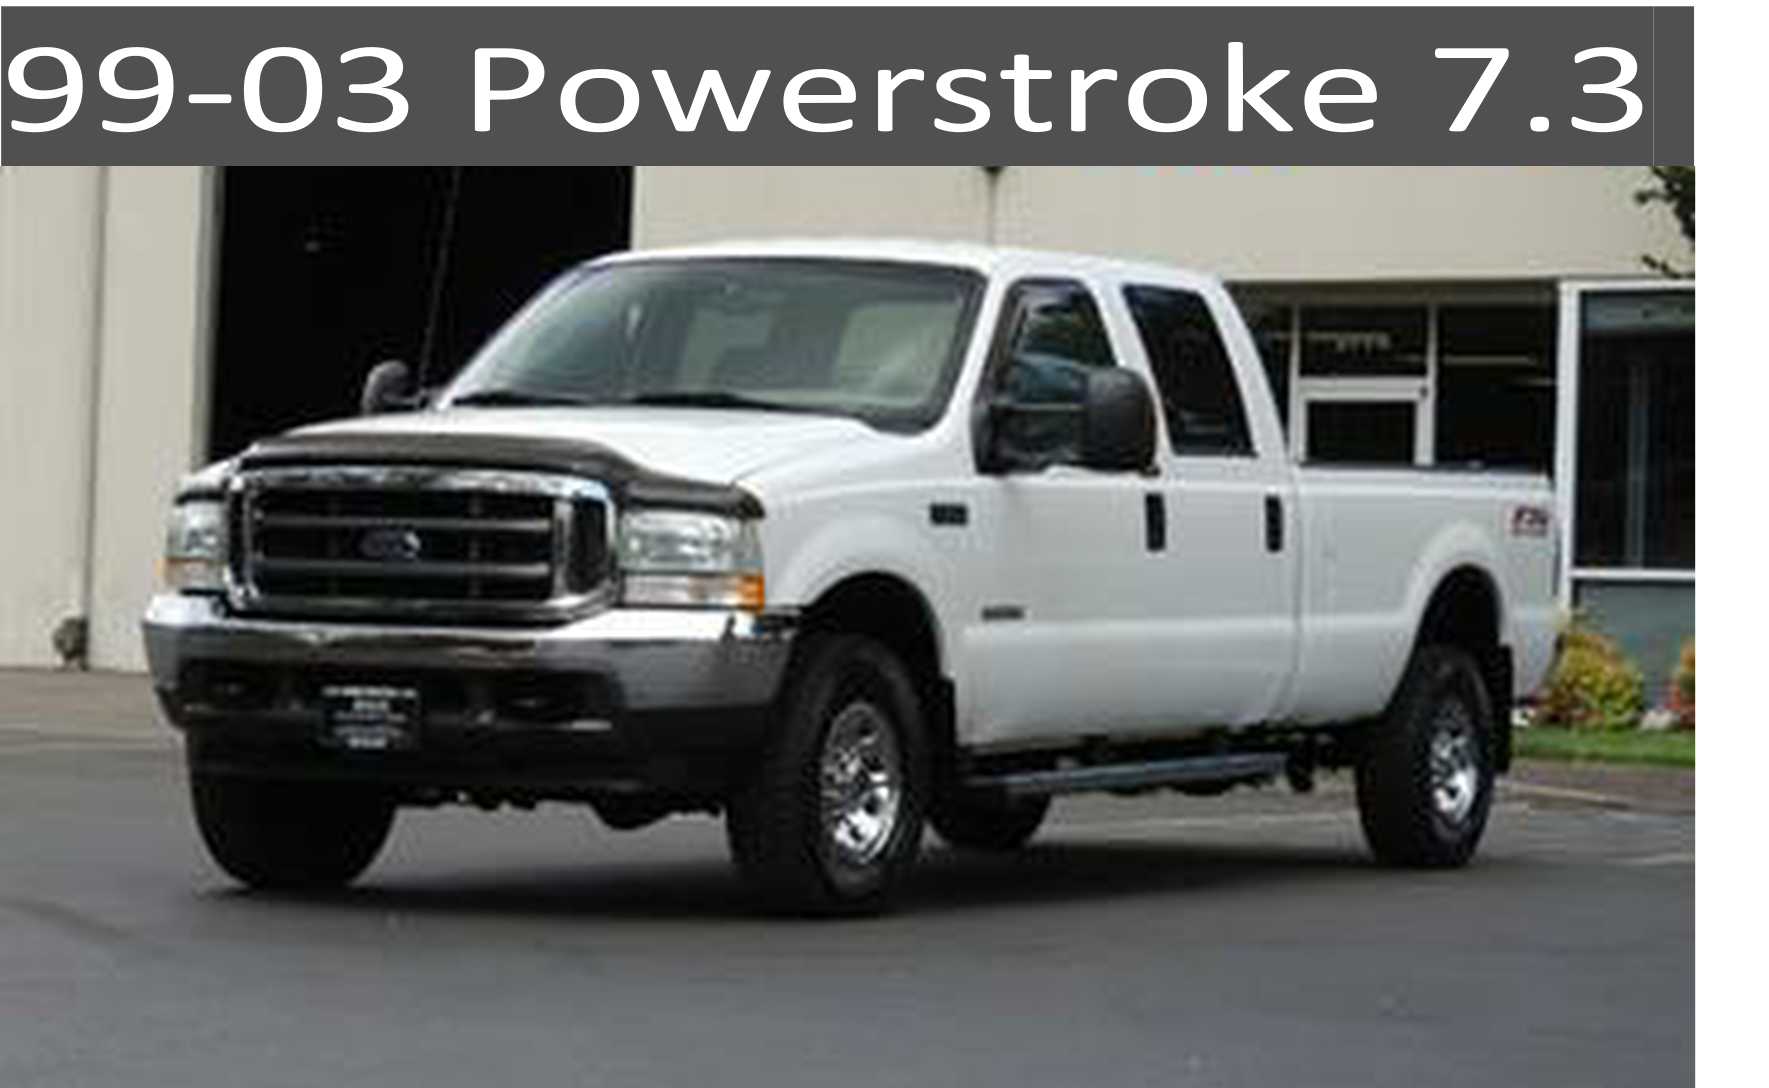 99-03 Ford 7.3 Powerstroke Diesel Parts